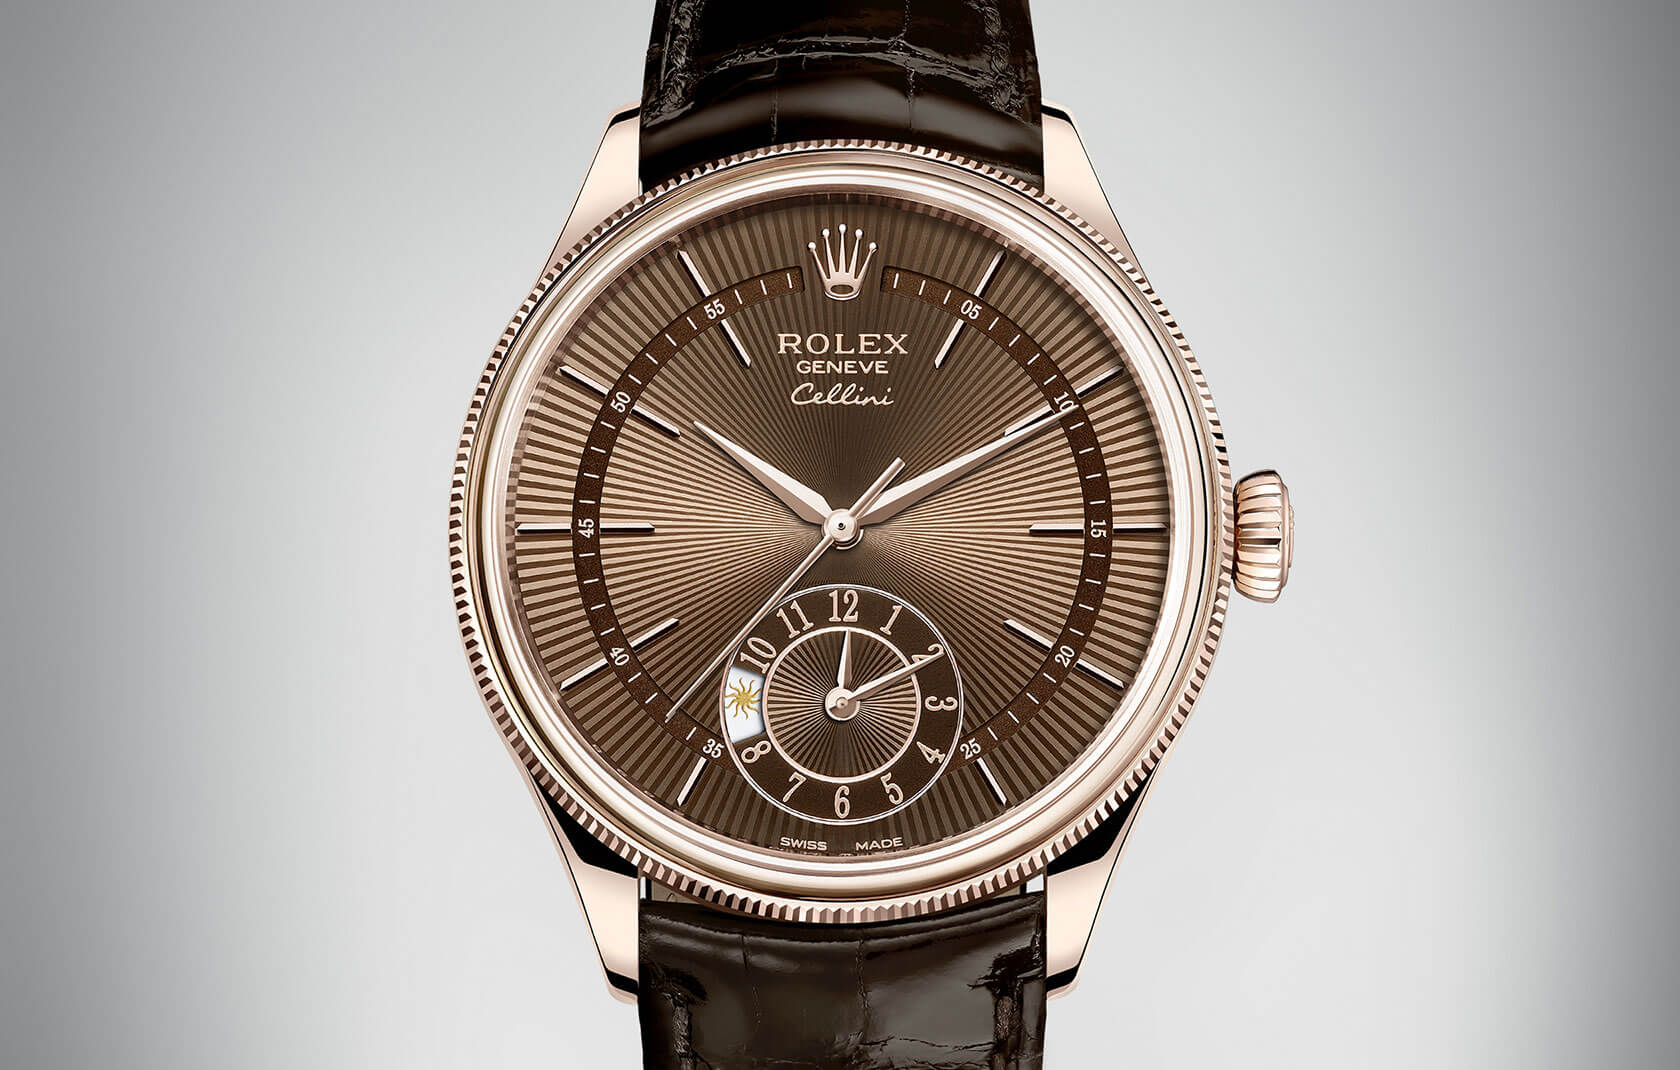 Rolex cellini time date dual time in 2016 for Rolex cellini